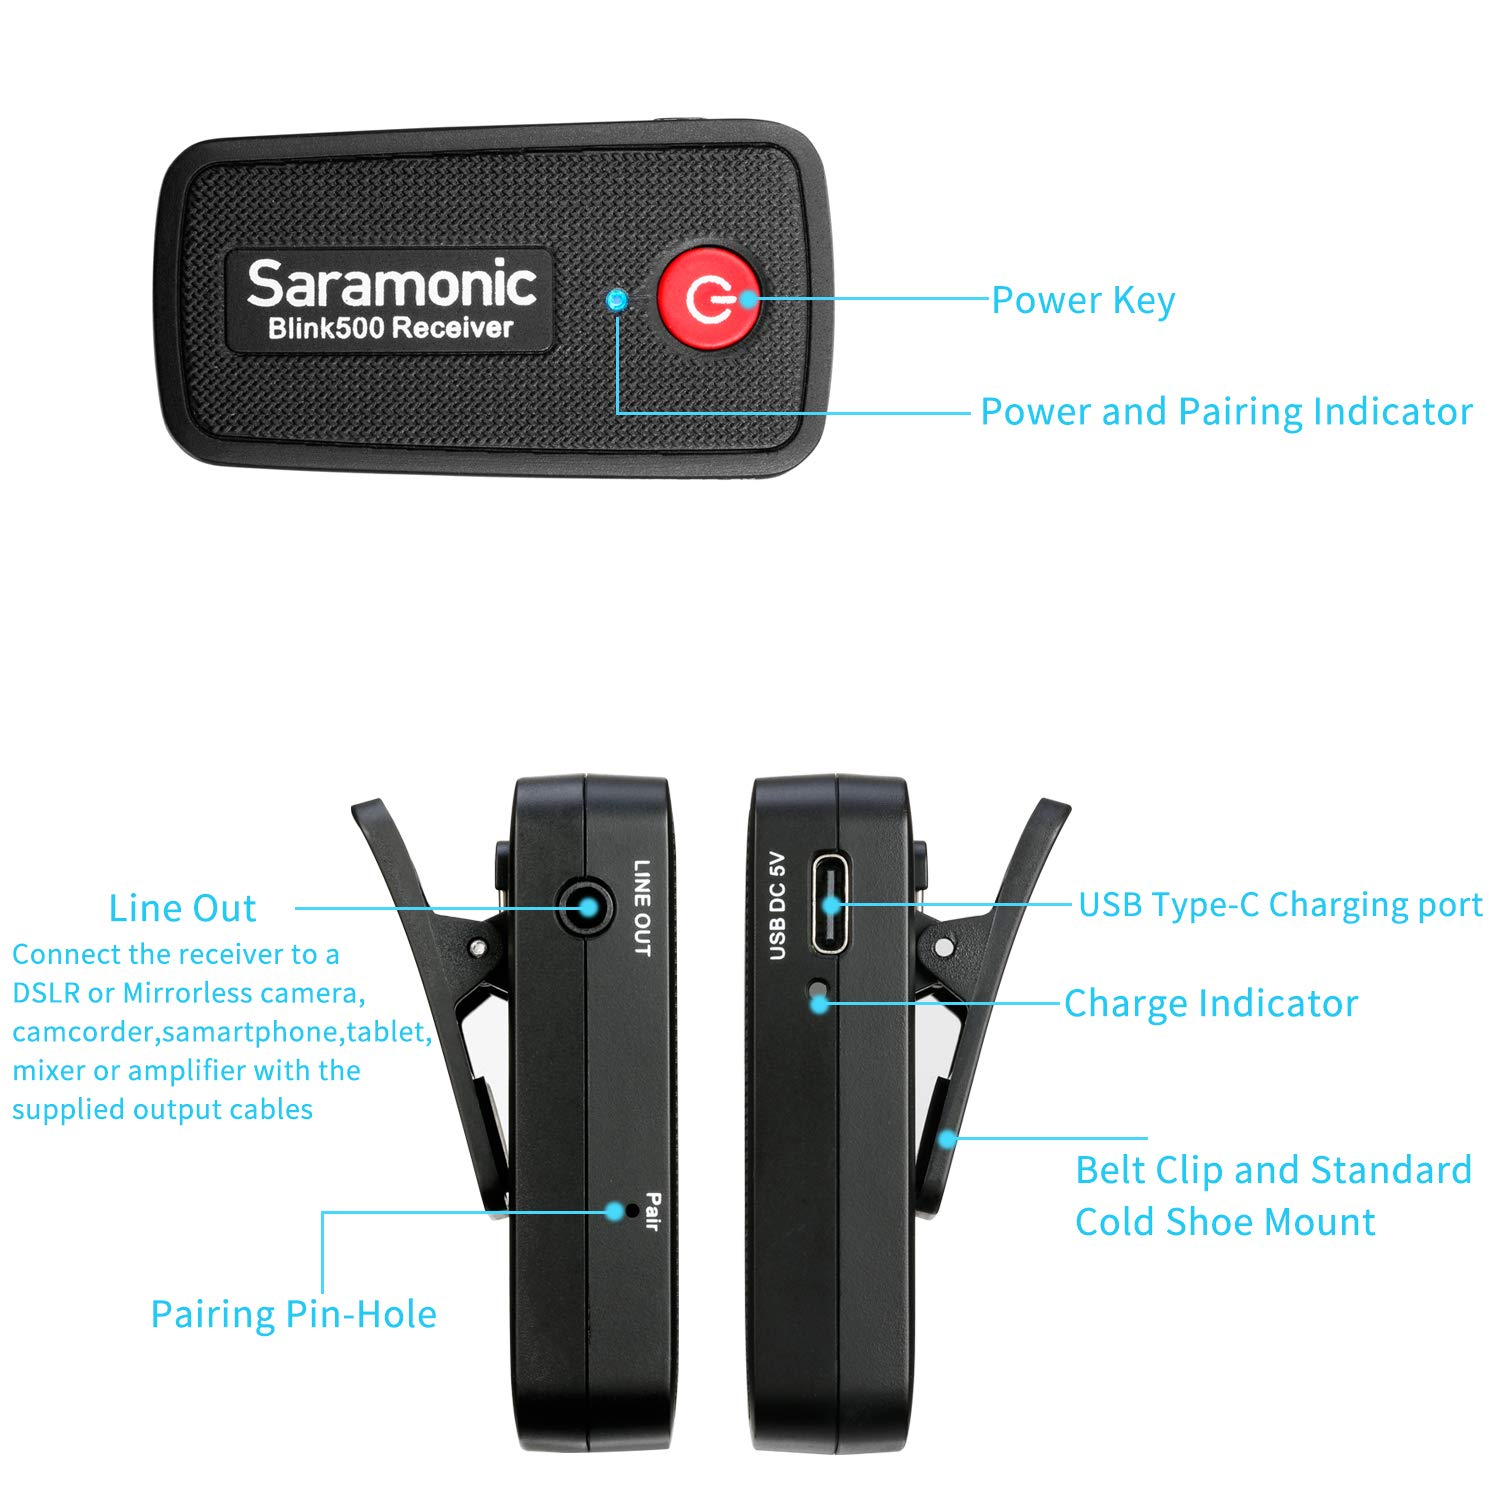 Saramonic Blink 500 Ultracompact 2.4GHz Dual-channel Wireless Microphone System TX+RX for DSLR Mirrorless Video Camera